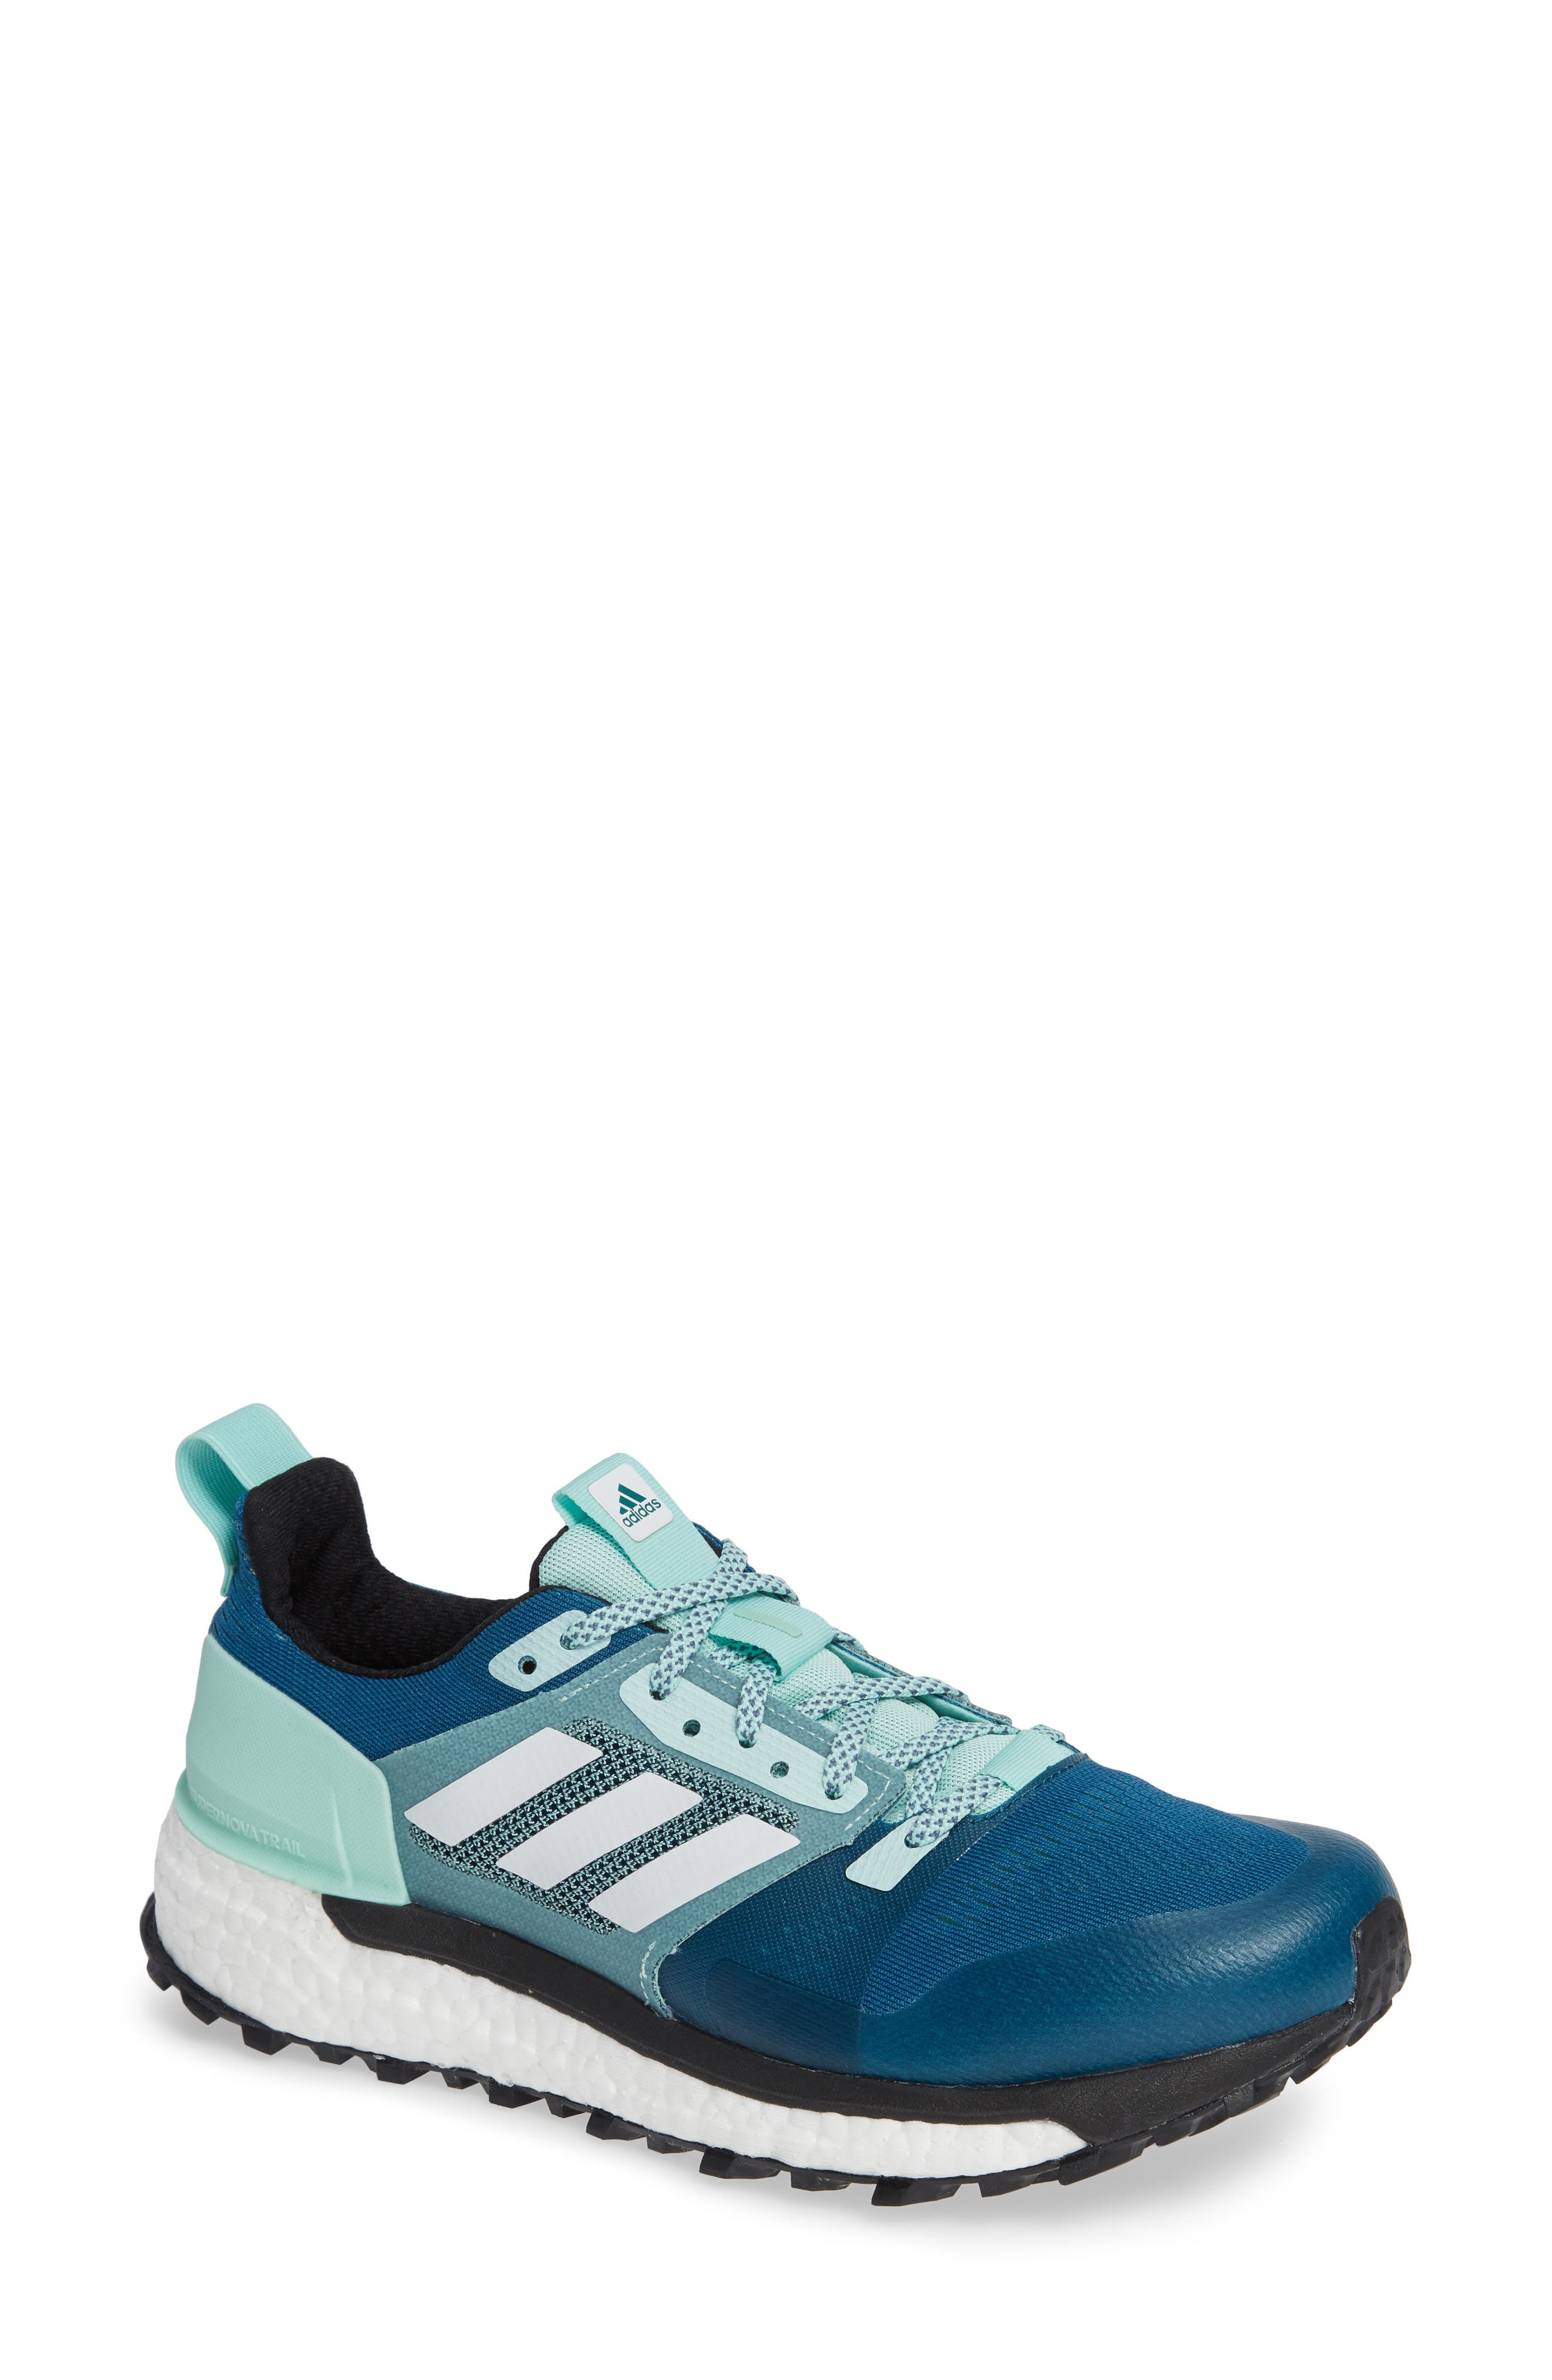 Supernova Trail Running Shoe,                         Main,                         color, REAL TEAL/ WHITE/ CLEAR MINT